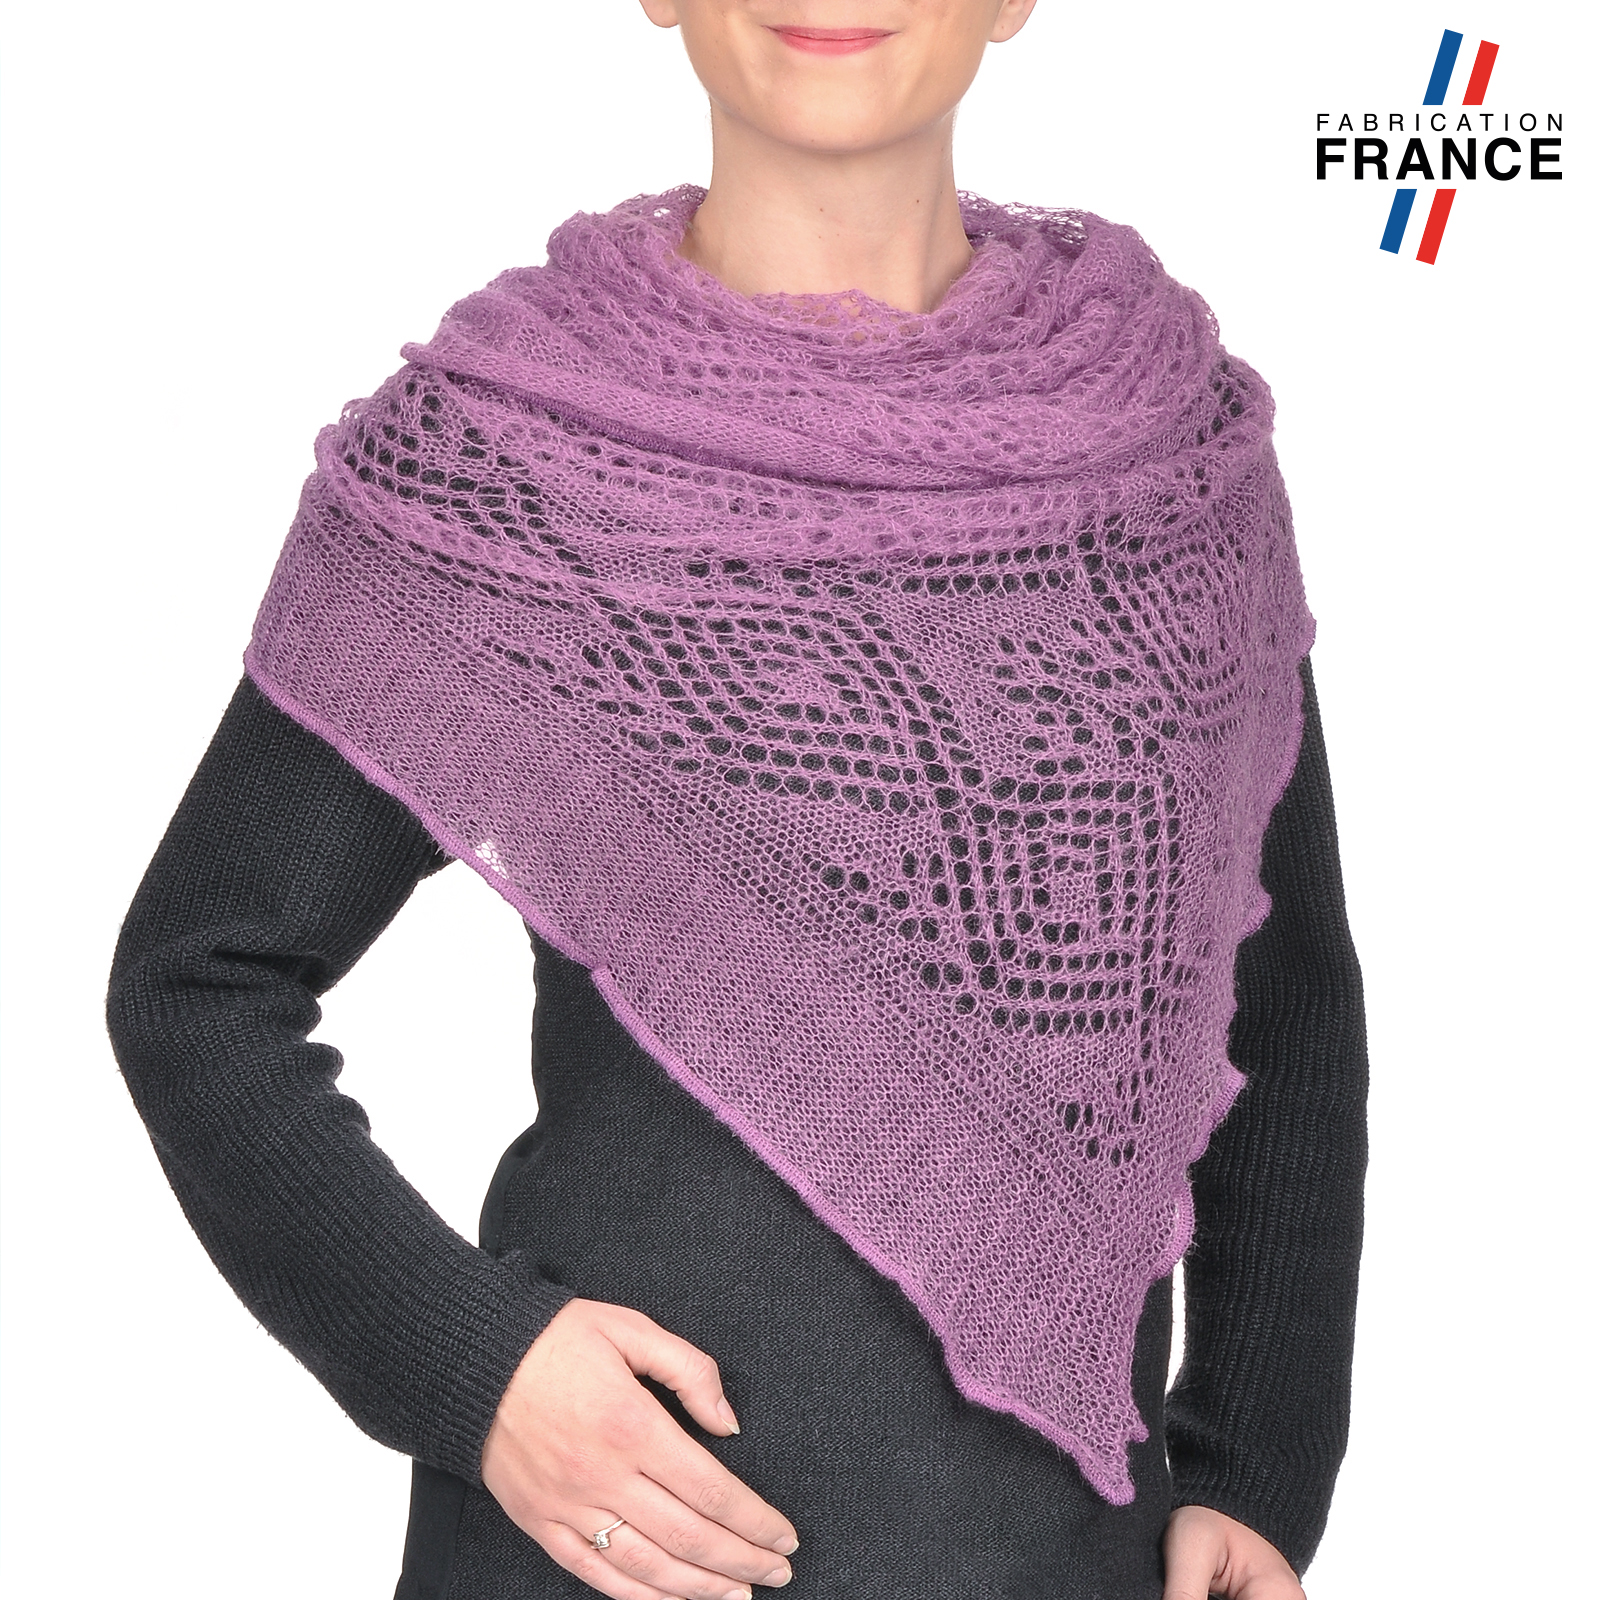 AT-03175-V16-echarpe-mohair-pointe-fine-maille-mauve